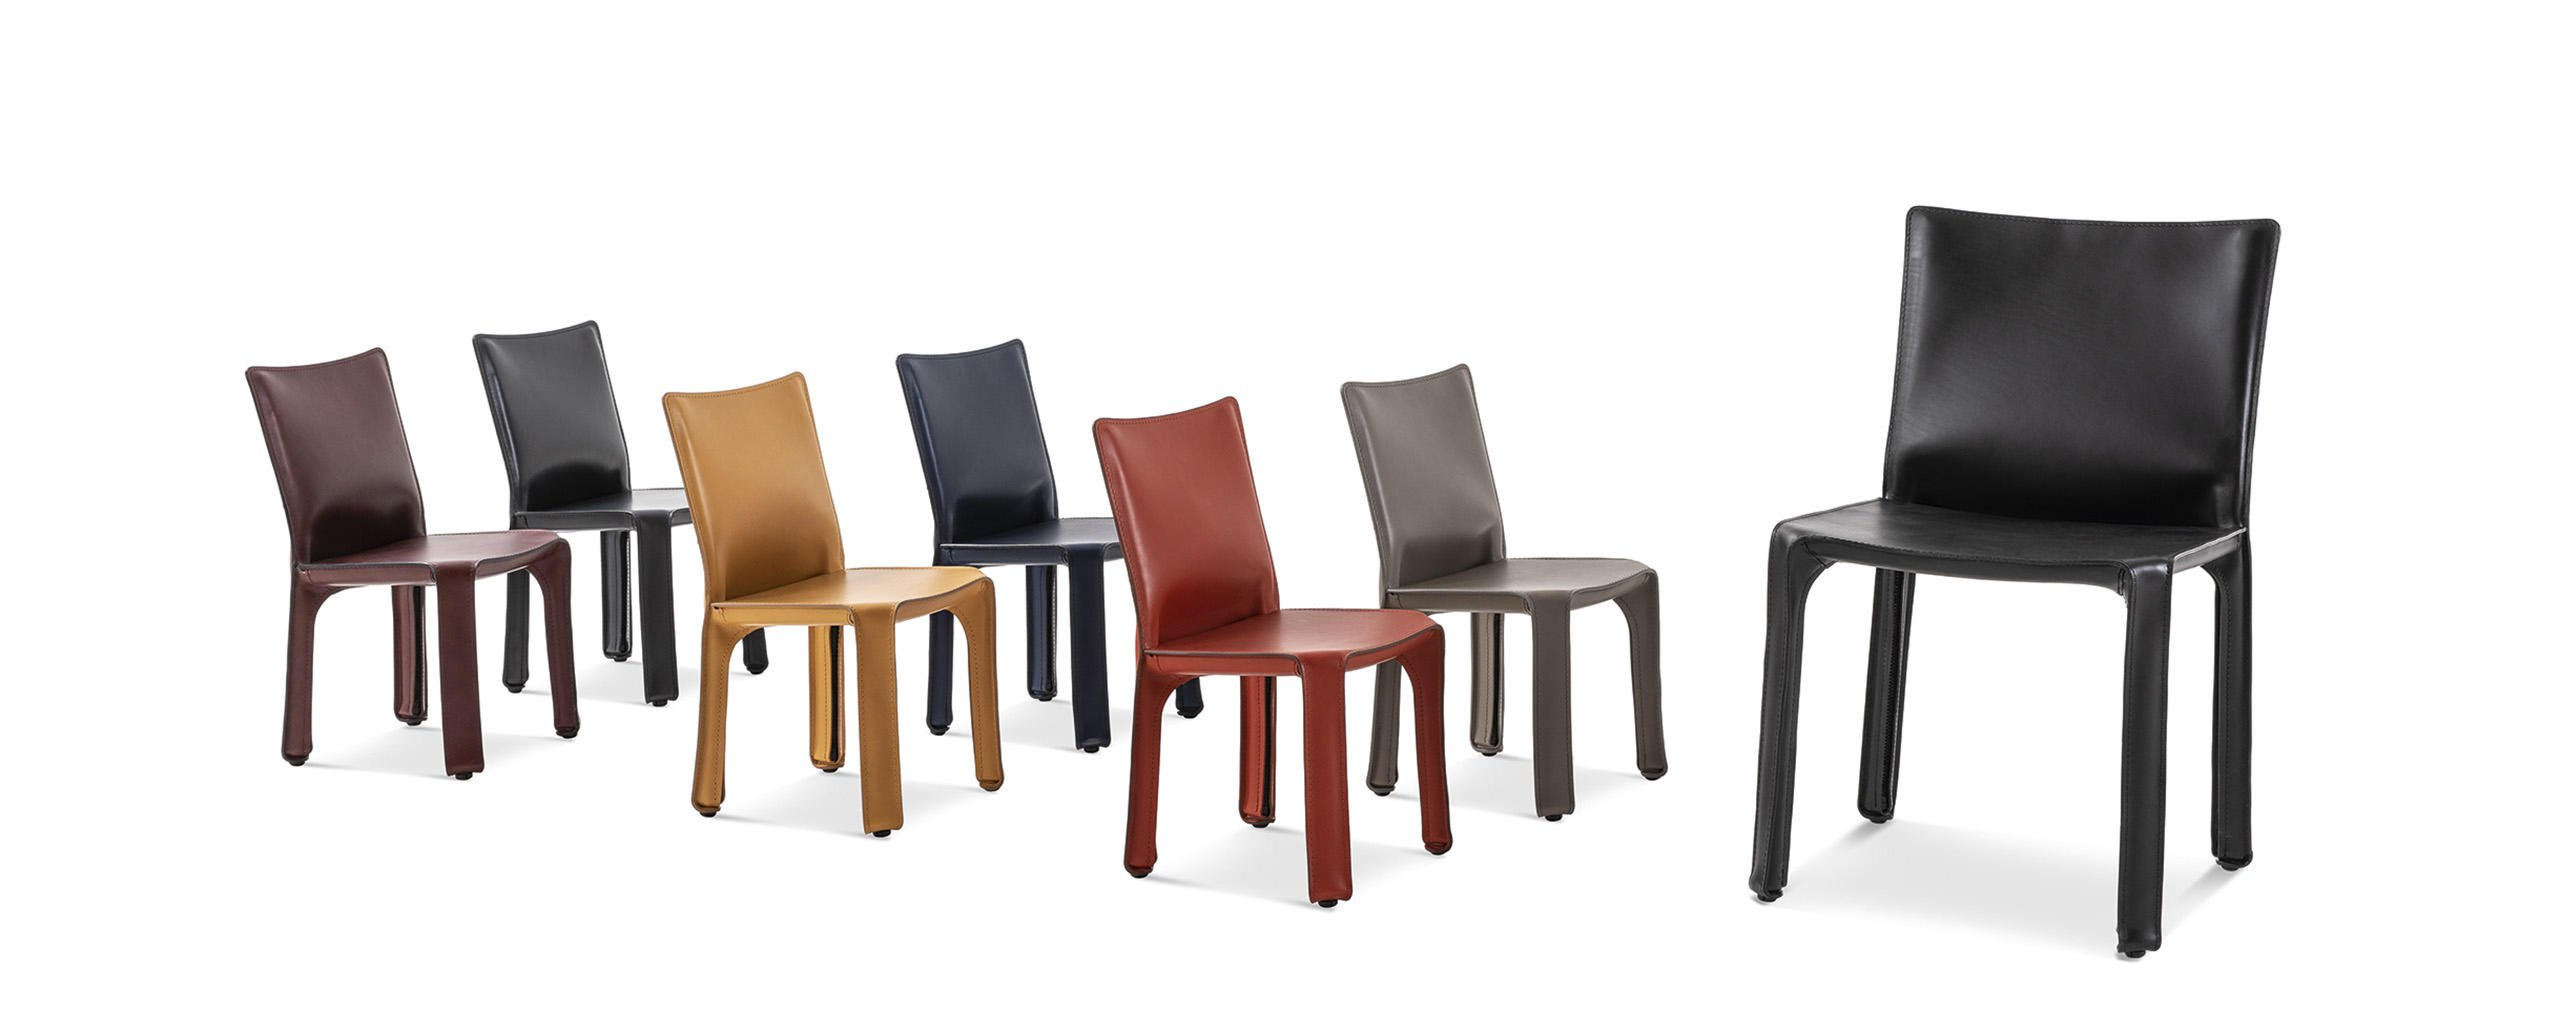 3_cassina_cab_family_mario_bellini